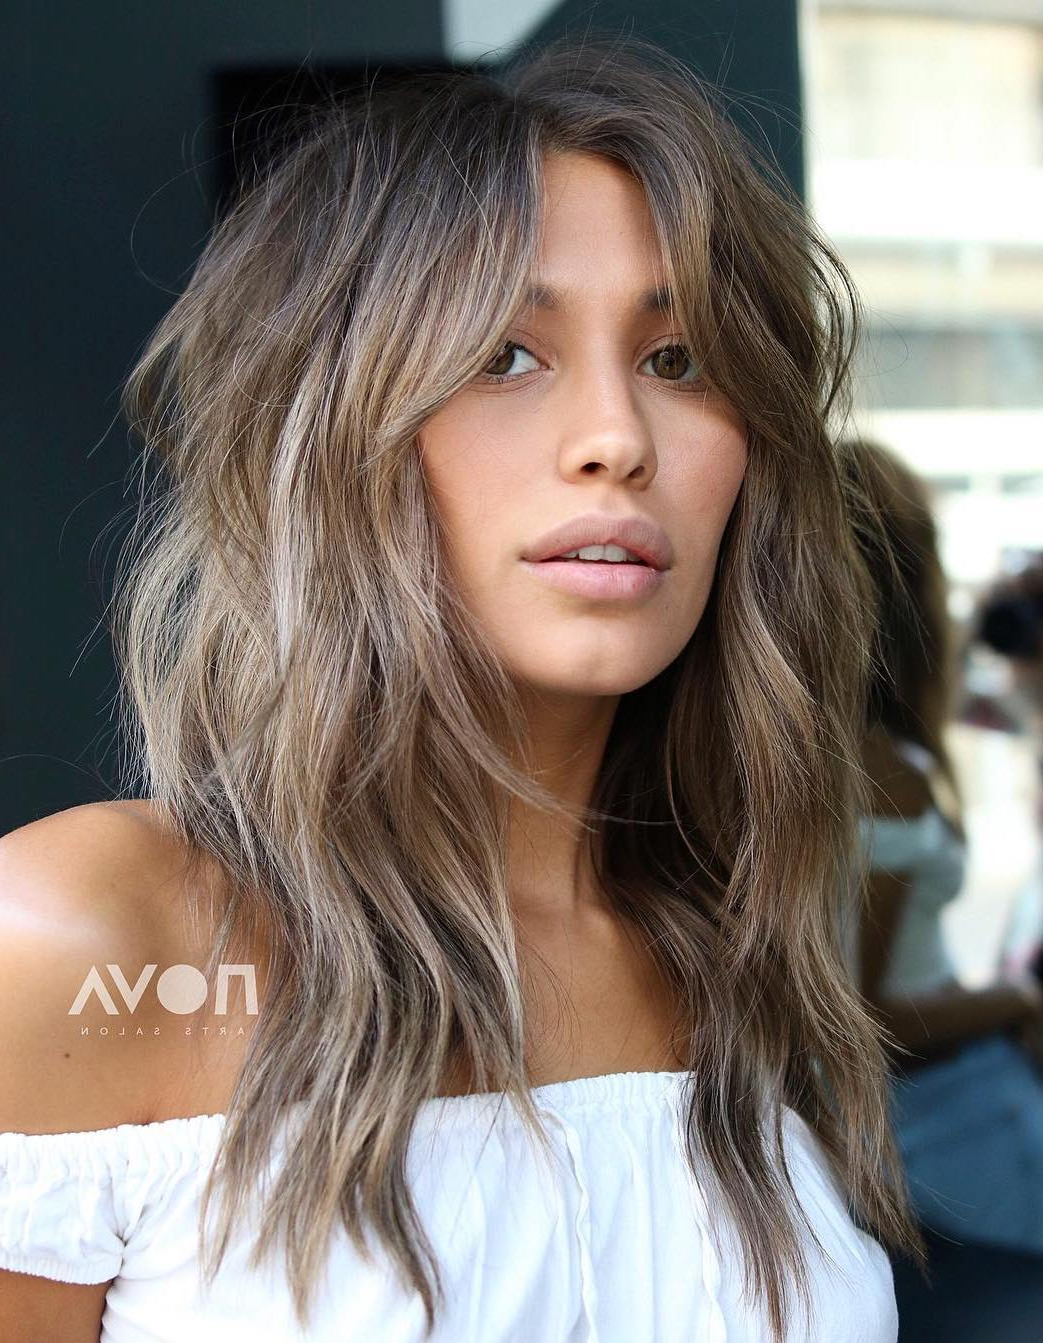 40 Modern Shag Haircuts For Women To Make A Splash Pertaining To Longer Waves Shag Haircuts (Gallery 4 of 20)